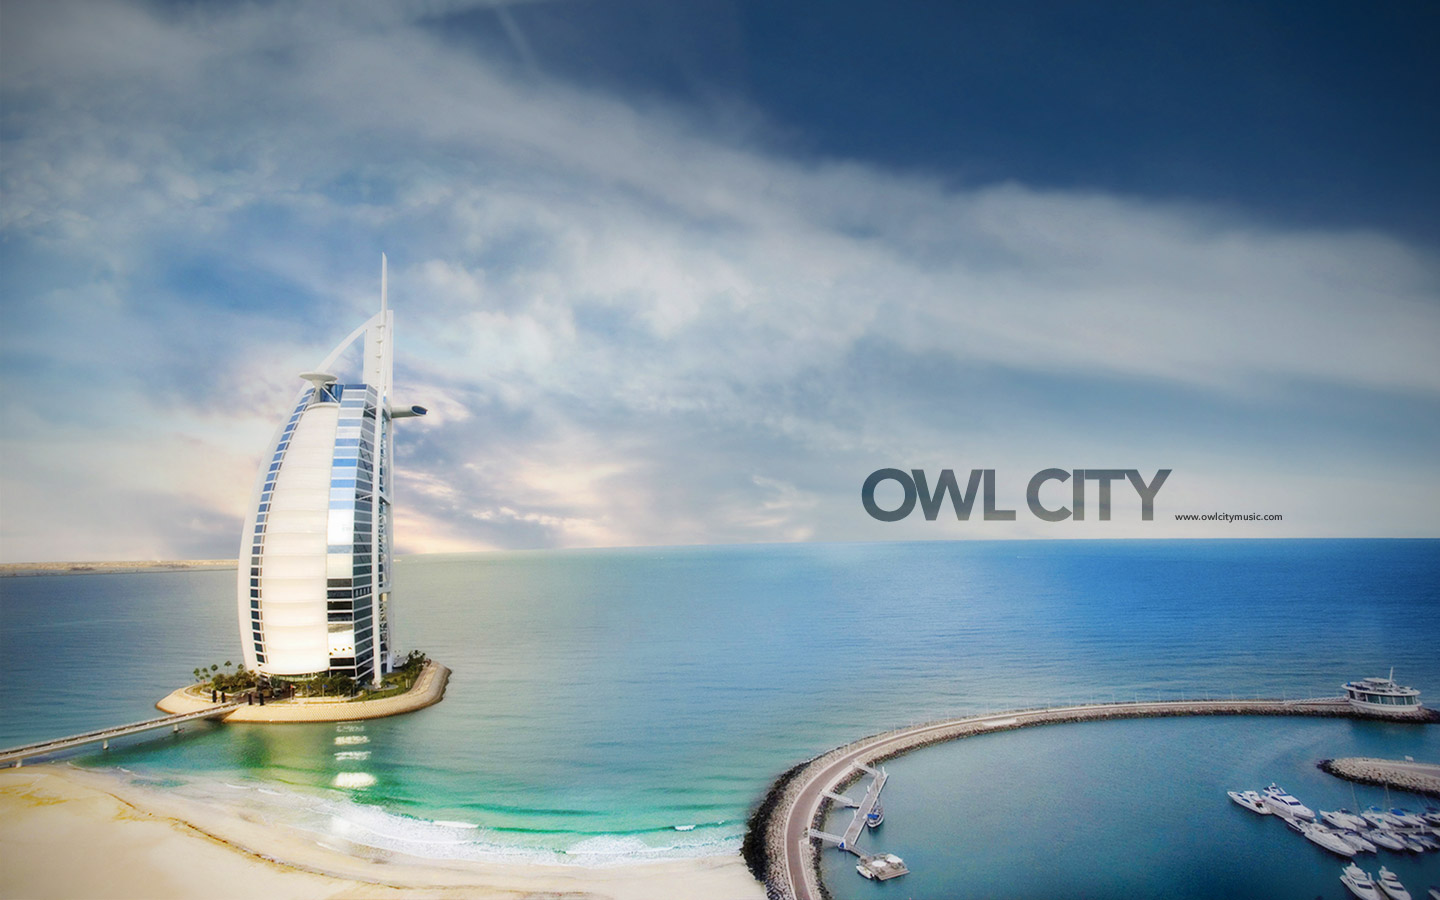 Owl_City_Beach_1440x900